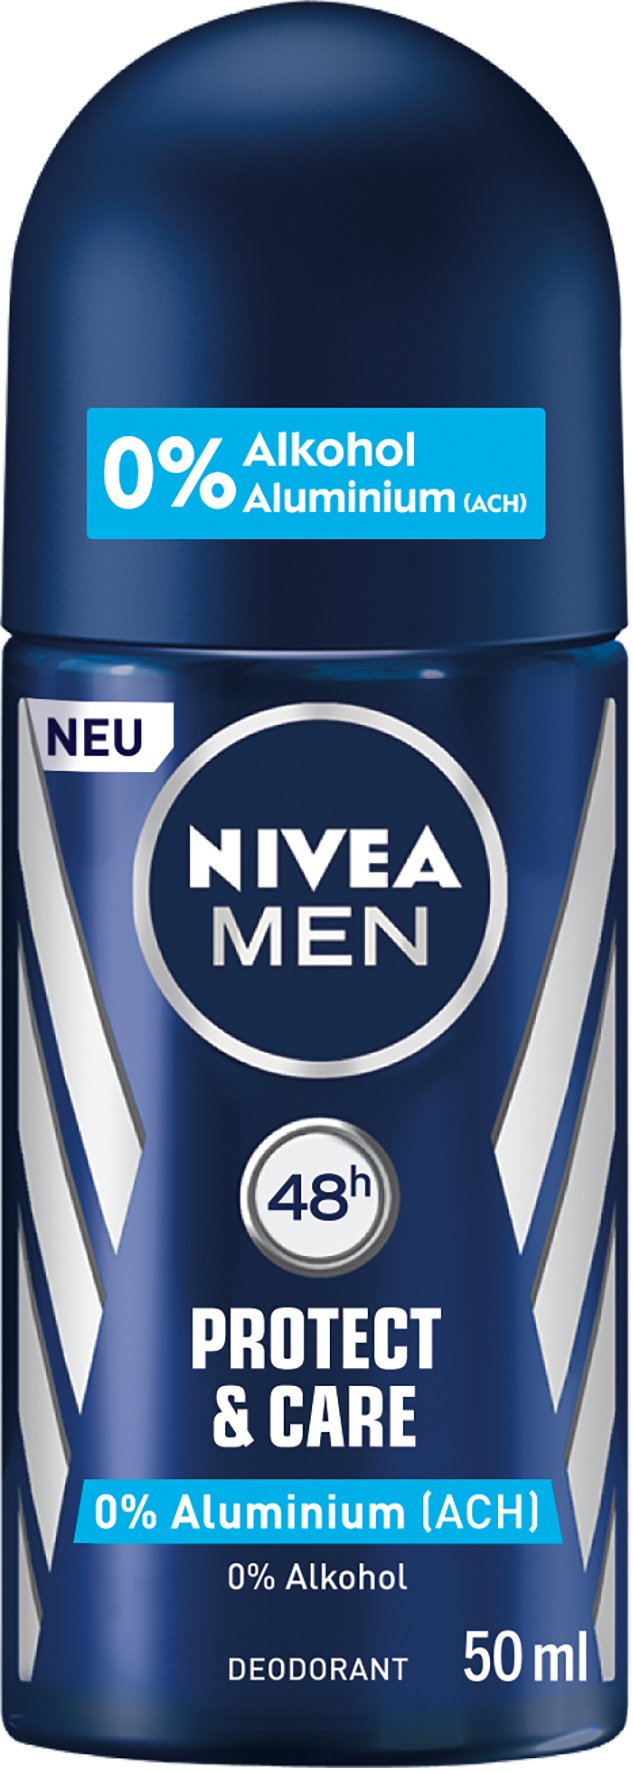 NIVEA MEN Protect & Care Deo Roll-on